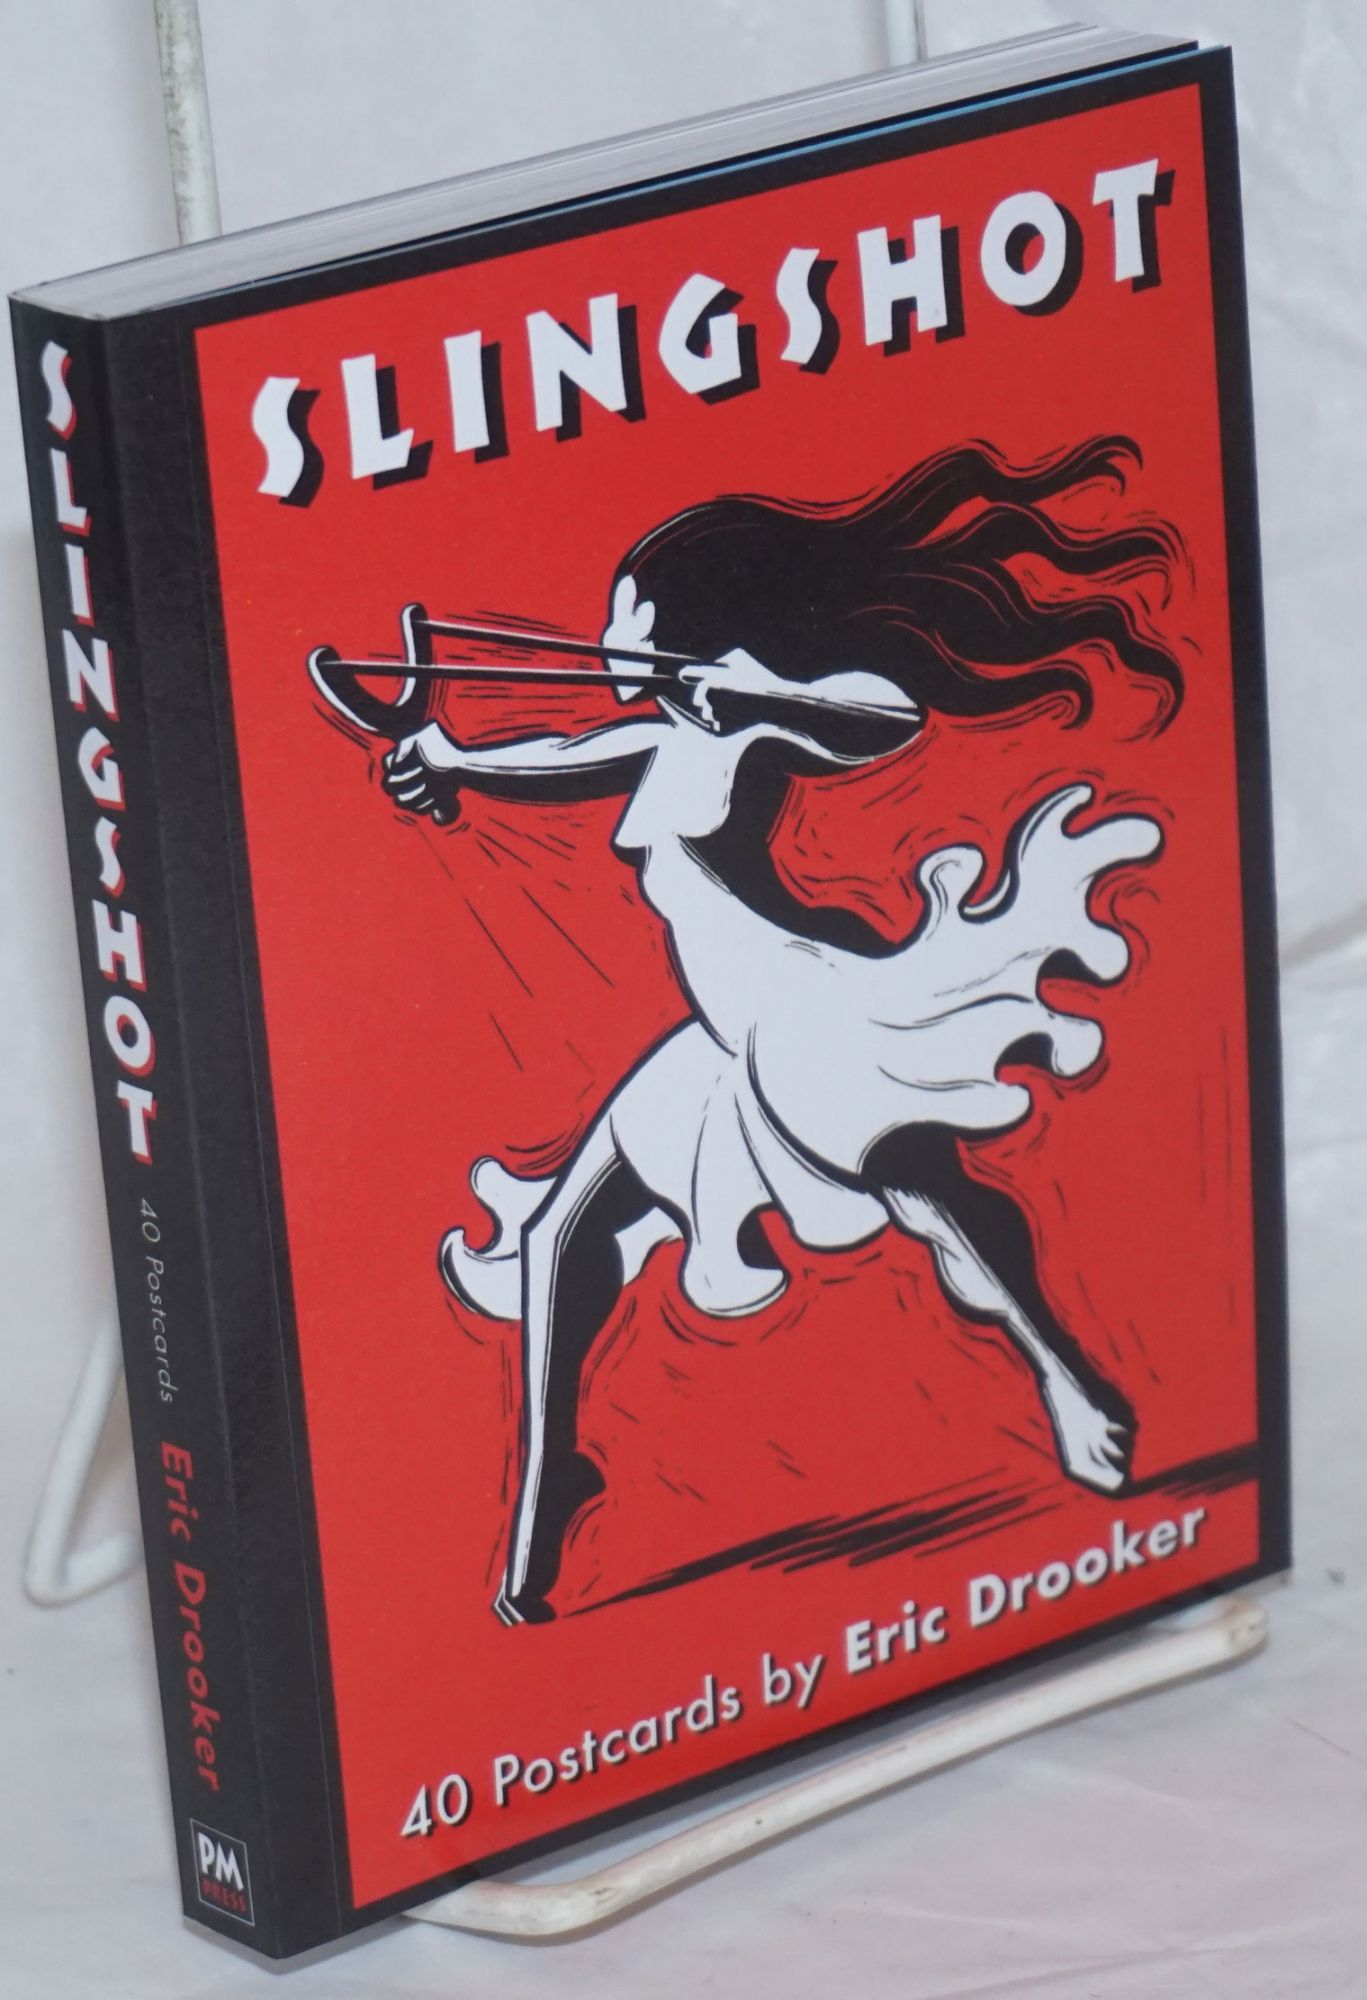 Art Of Eric Drooker Slingshot 40 Postcards By Eric Drooker By Eric Drooker On Bolerium Books